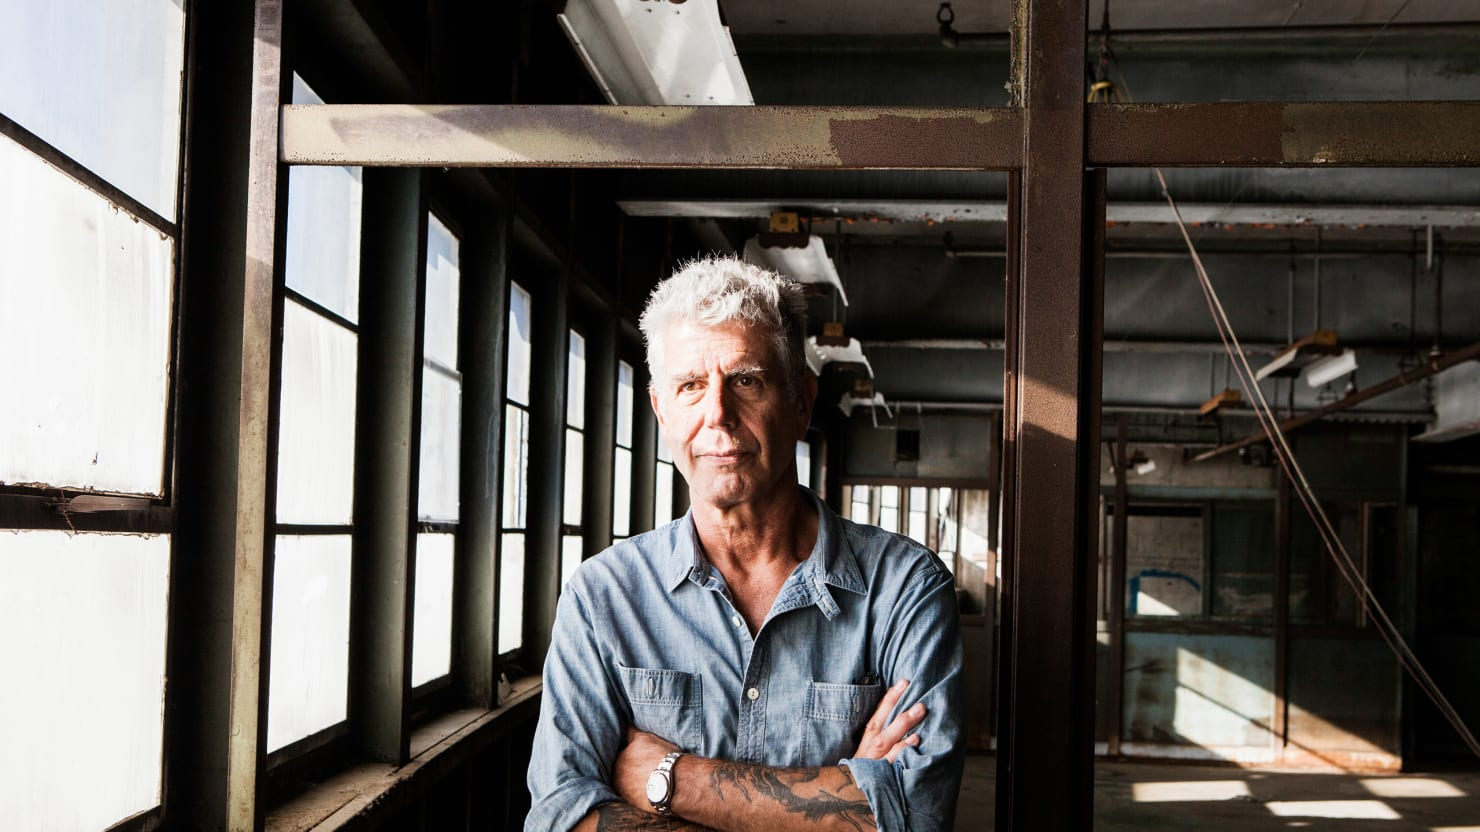 Will Anthony Bourdain's Market Be Sweet or Sour?